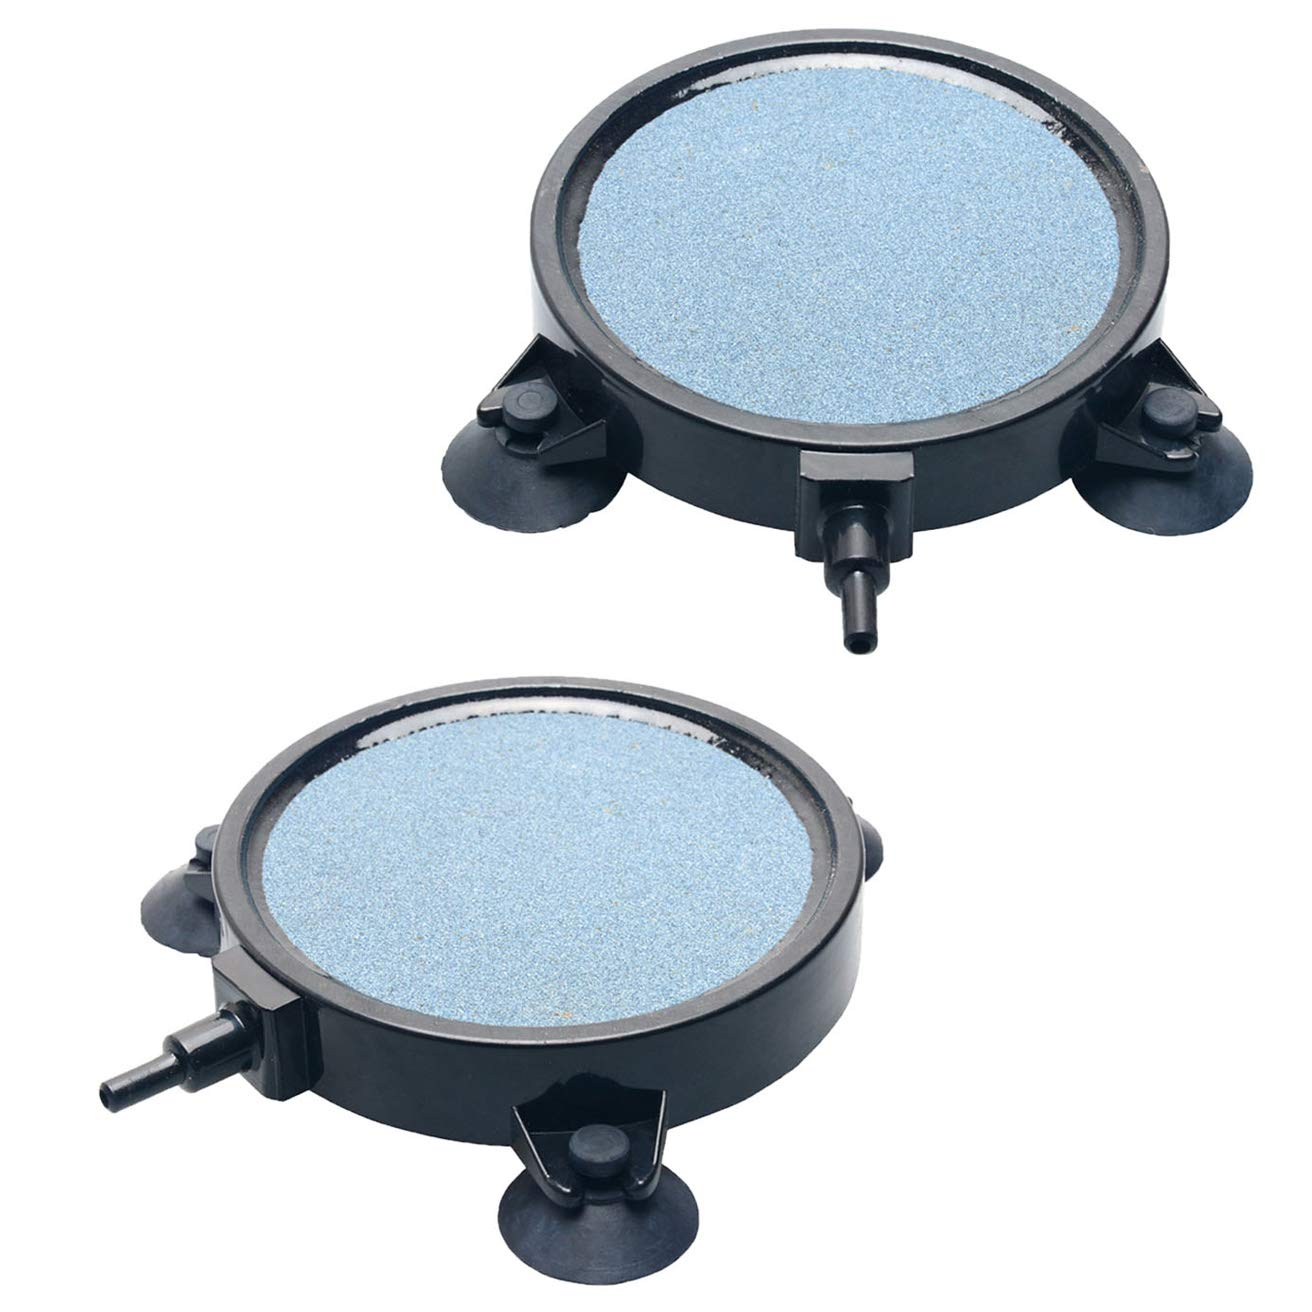 Pawfly 2 PCS 4-Inch Air Stone Disc Bubble Diffuser with Suction Cups for Hydroponics Aquarium Fish Tank Pump by Pawfly